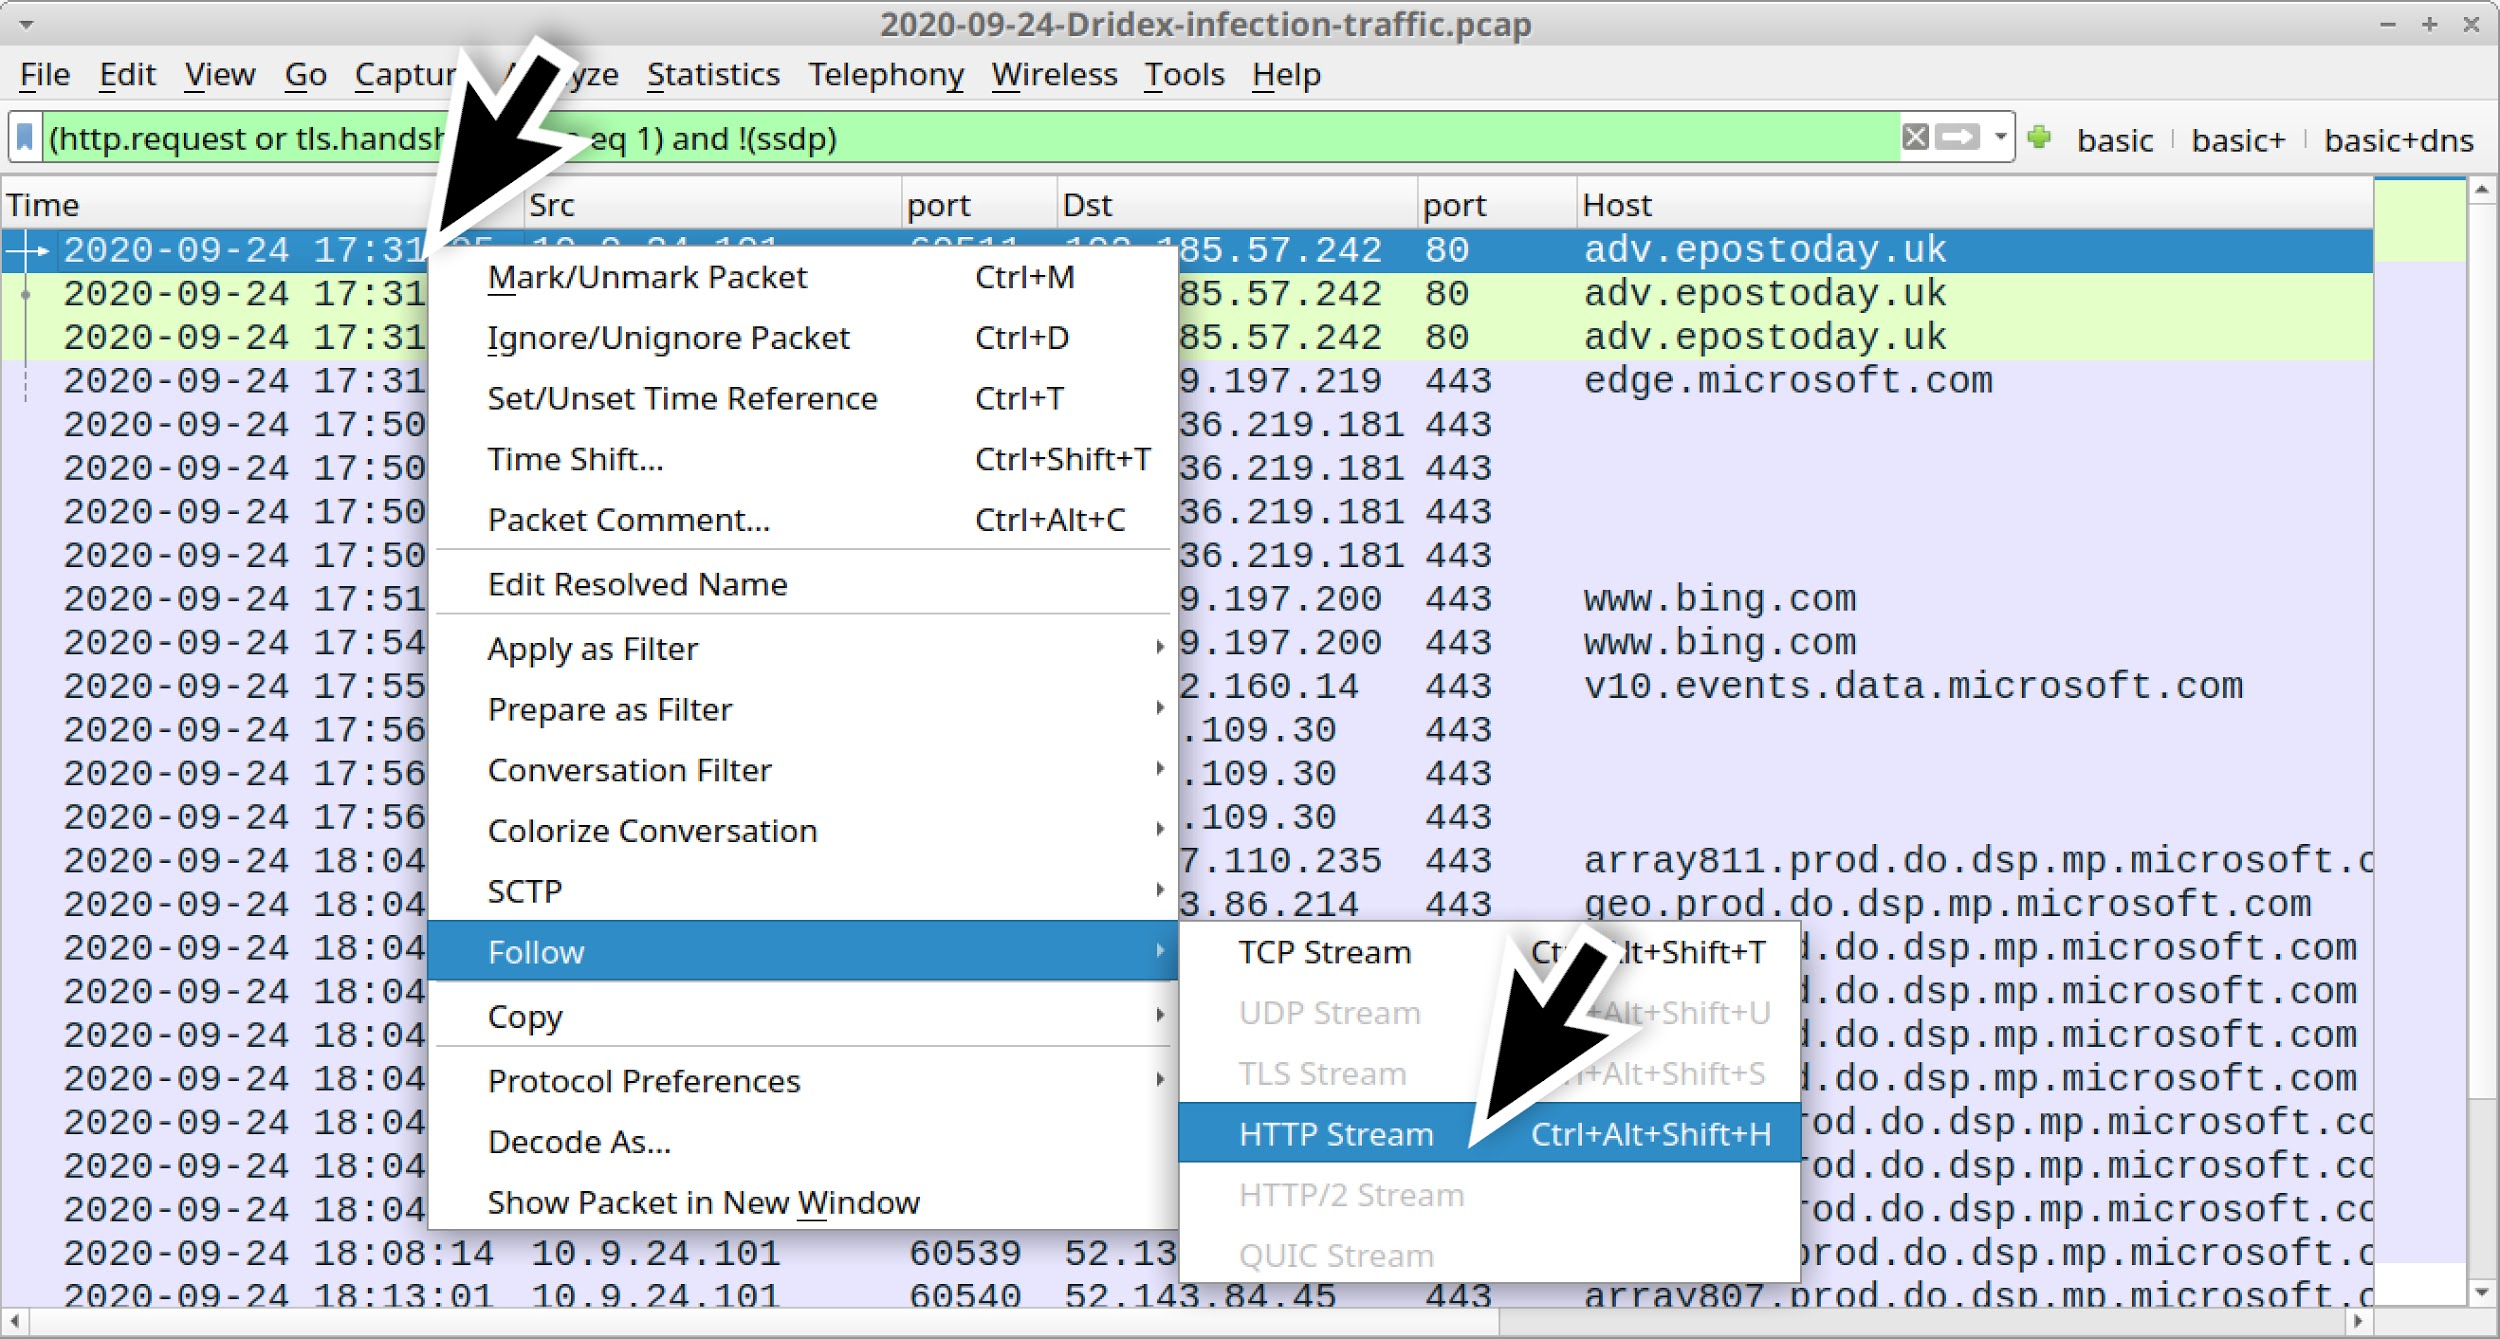 The HTTP stream (not the TCP stream) can be followed. The screenshot indicates how to find that option in Wireshark.